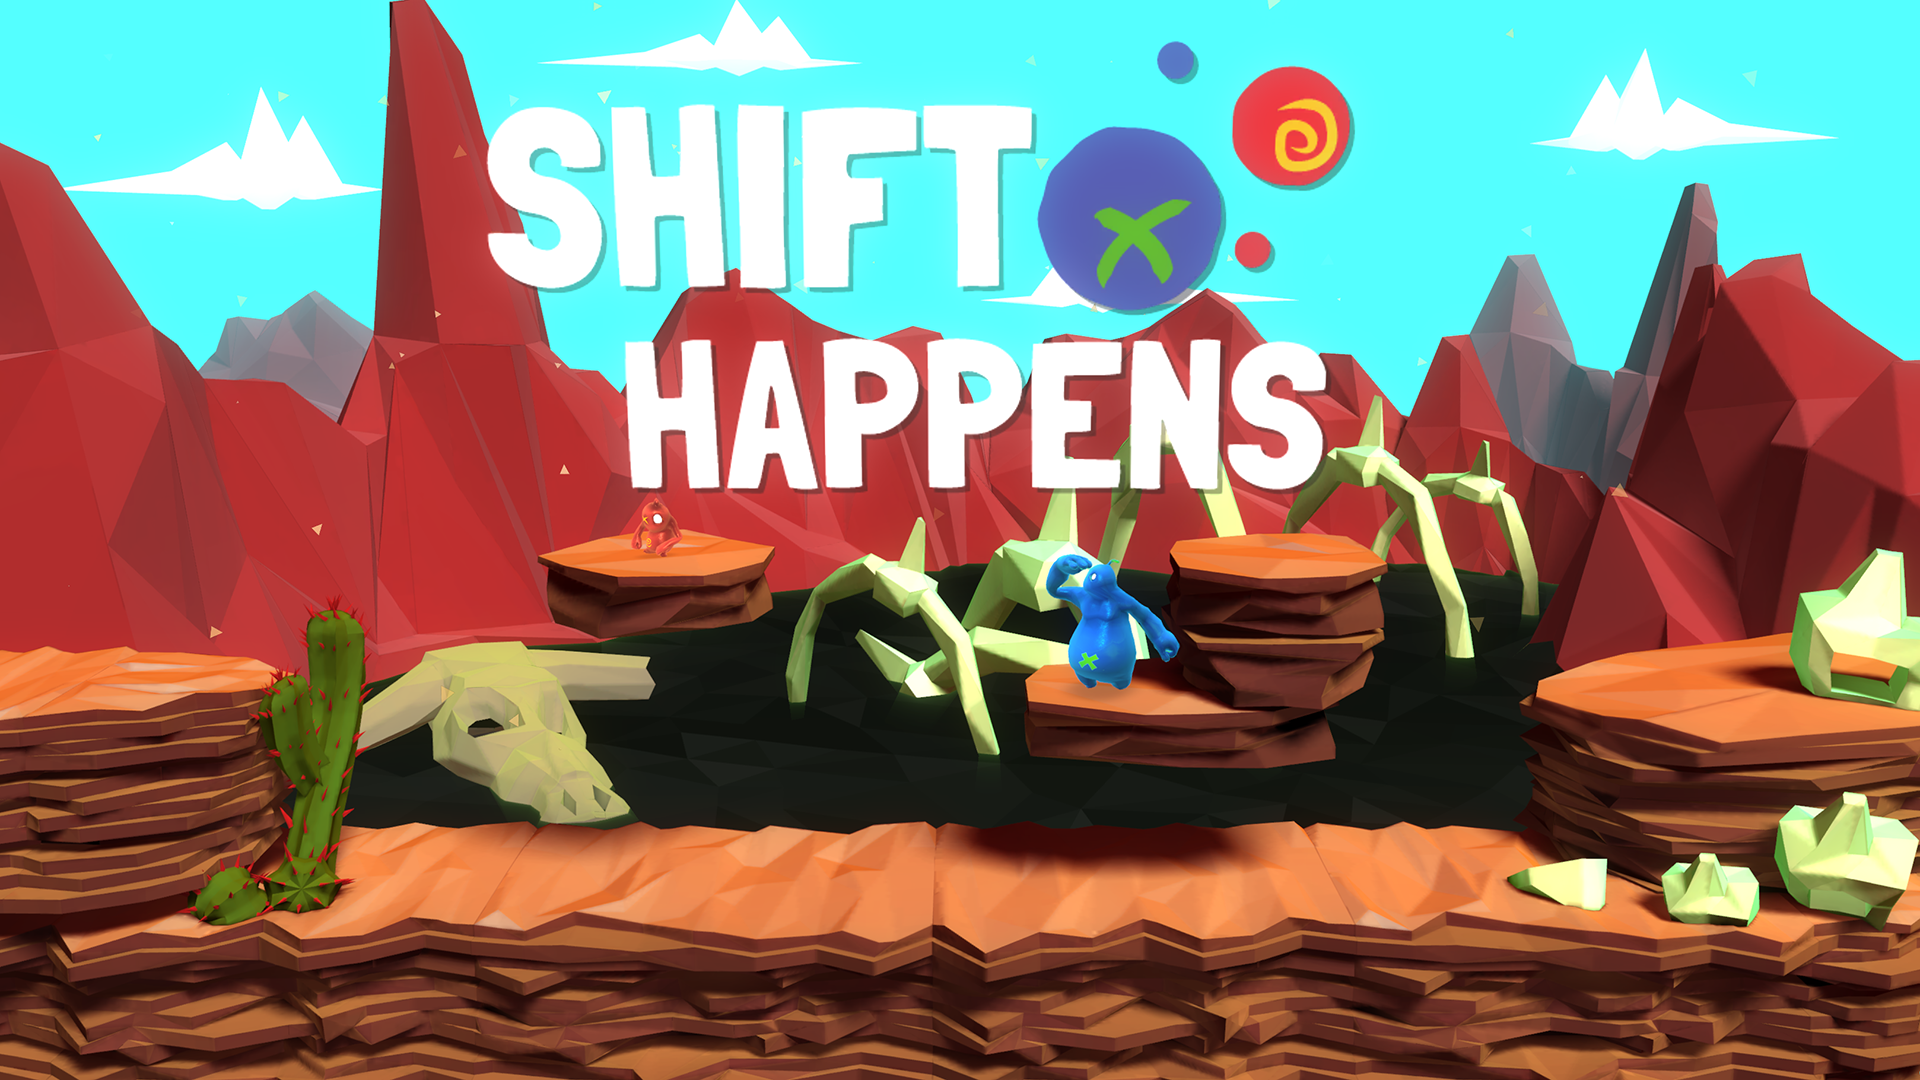 31_shift_happens_canyon_splash_1080p.png